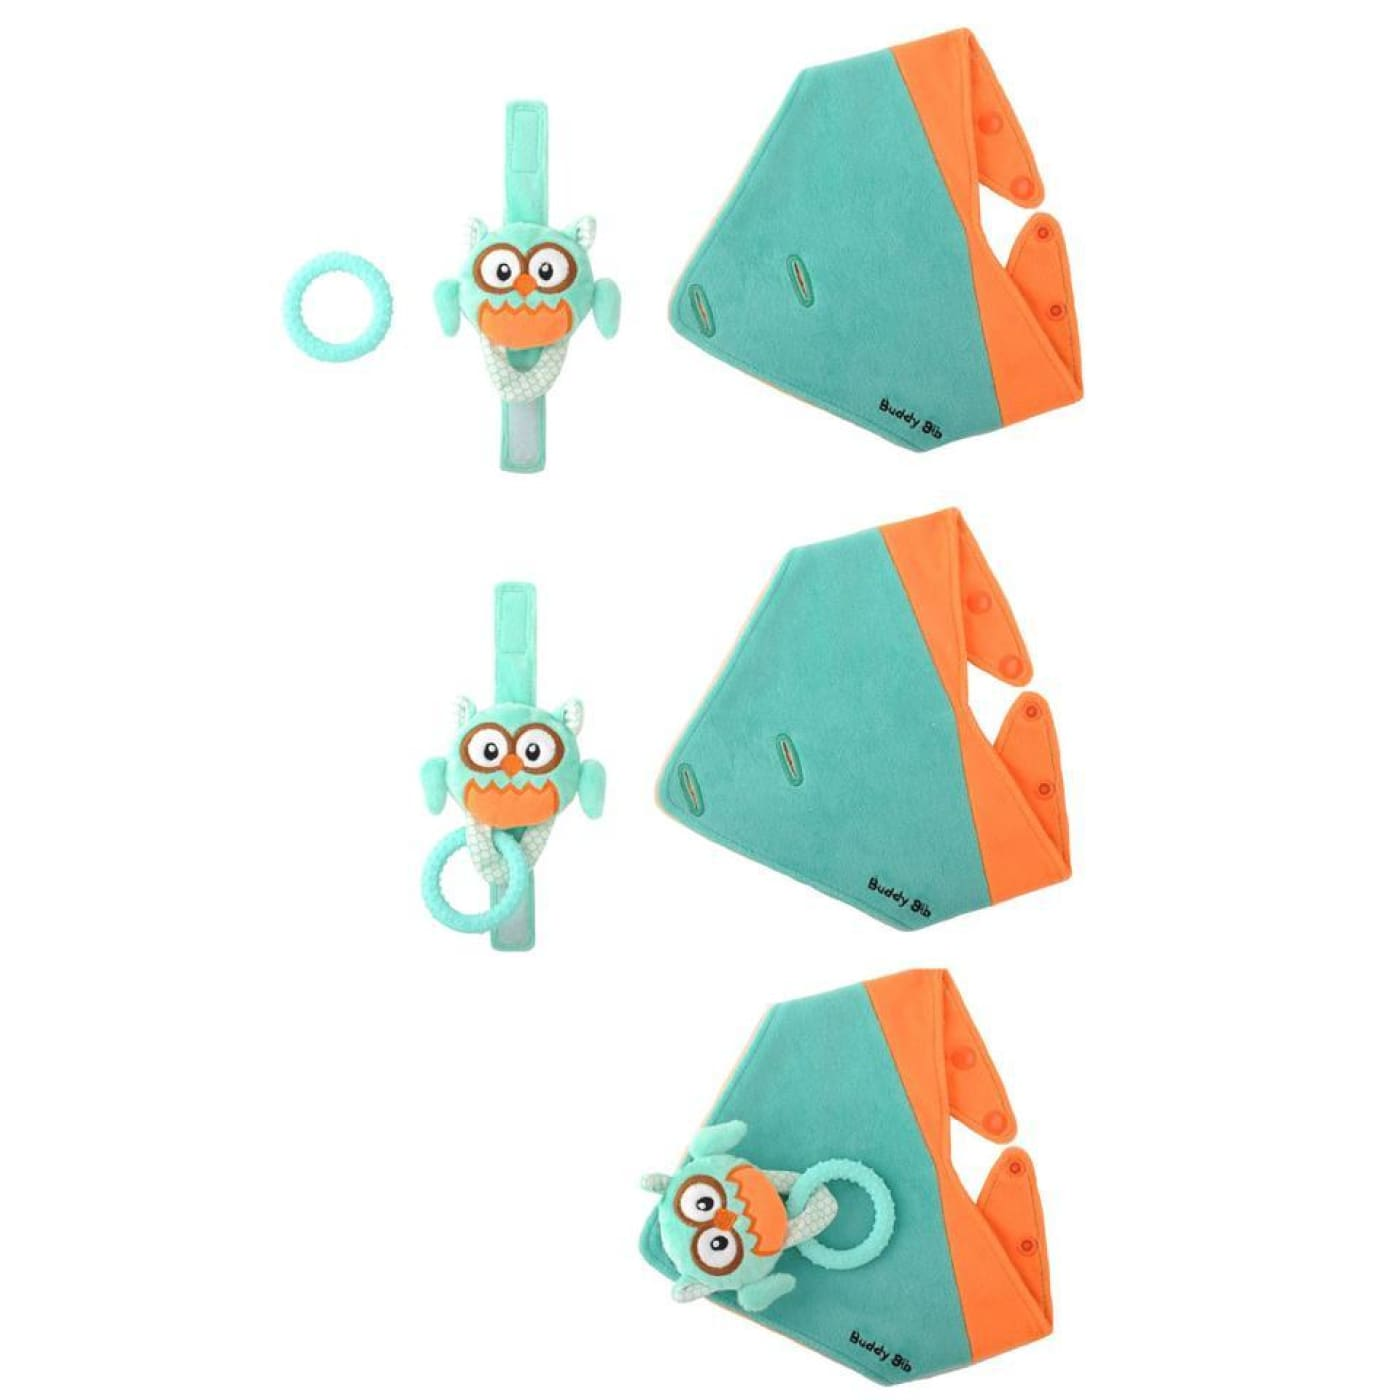 Malarkey Kids Buddy Bib - Aqua Ollie Owl - NURSING & FEEDING - BIBS/BURP CLOTHS